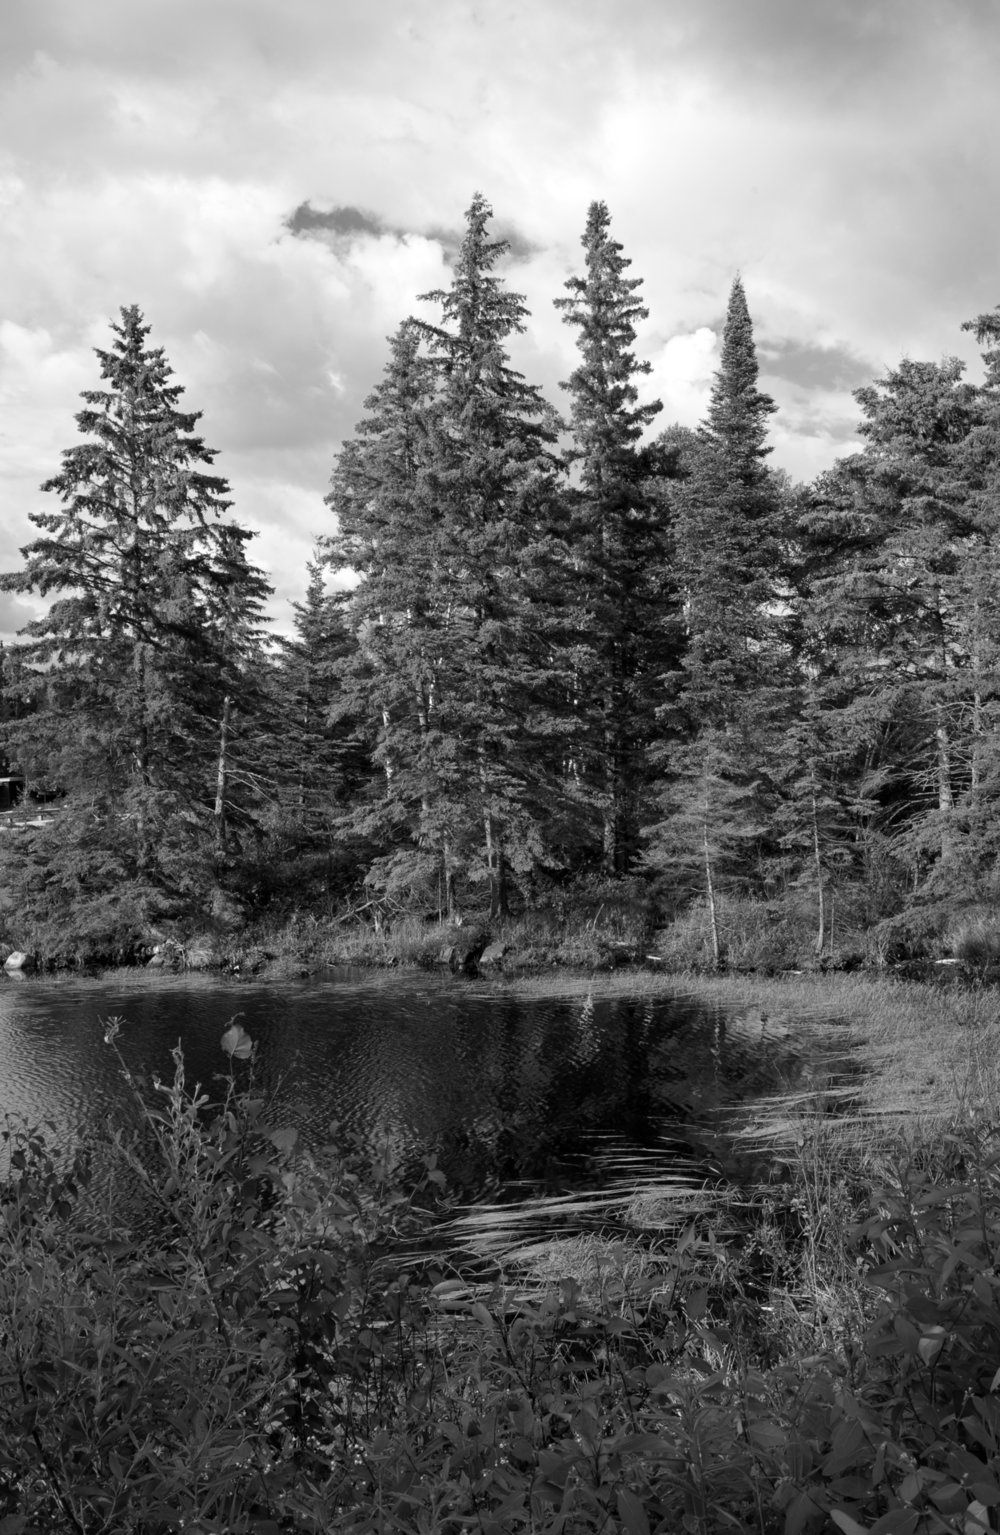 Spruce Water By: Robert Lowdon Small body of water in North Western Ontario